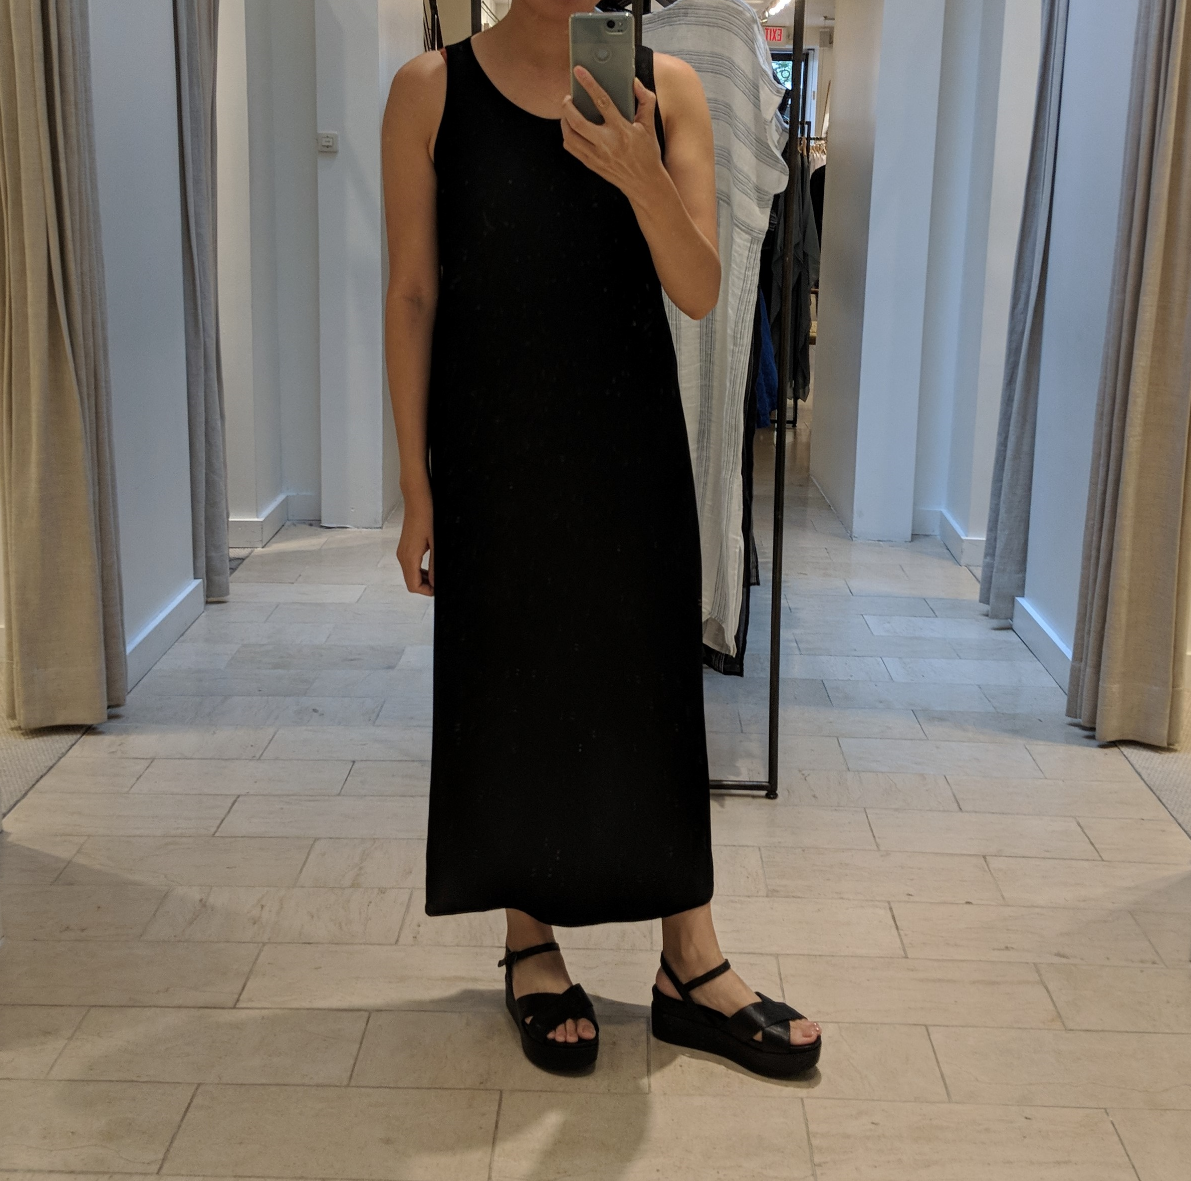 outfit: nude or black? (+ apartment